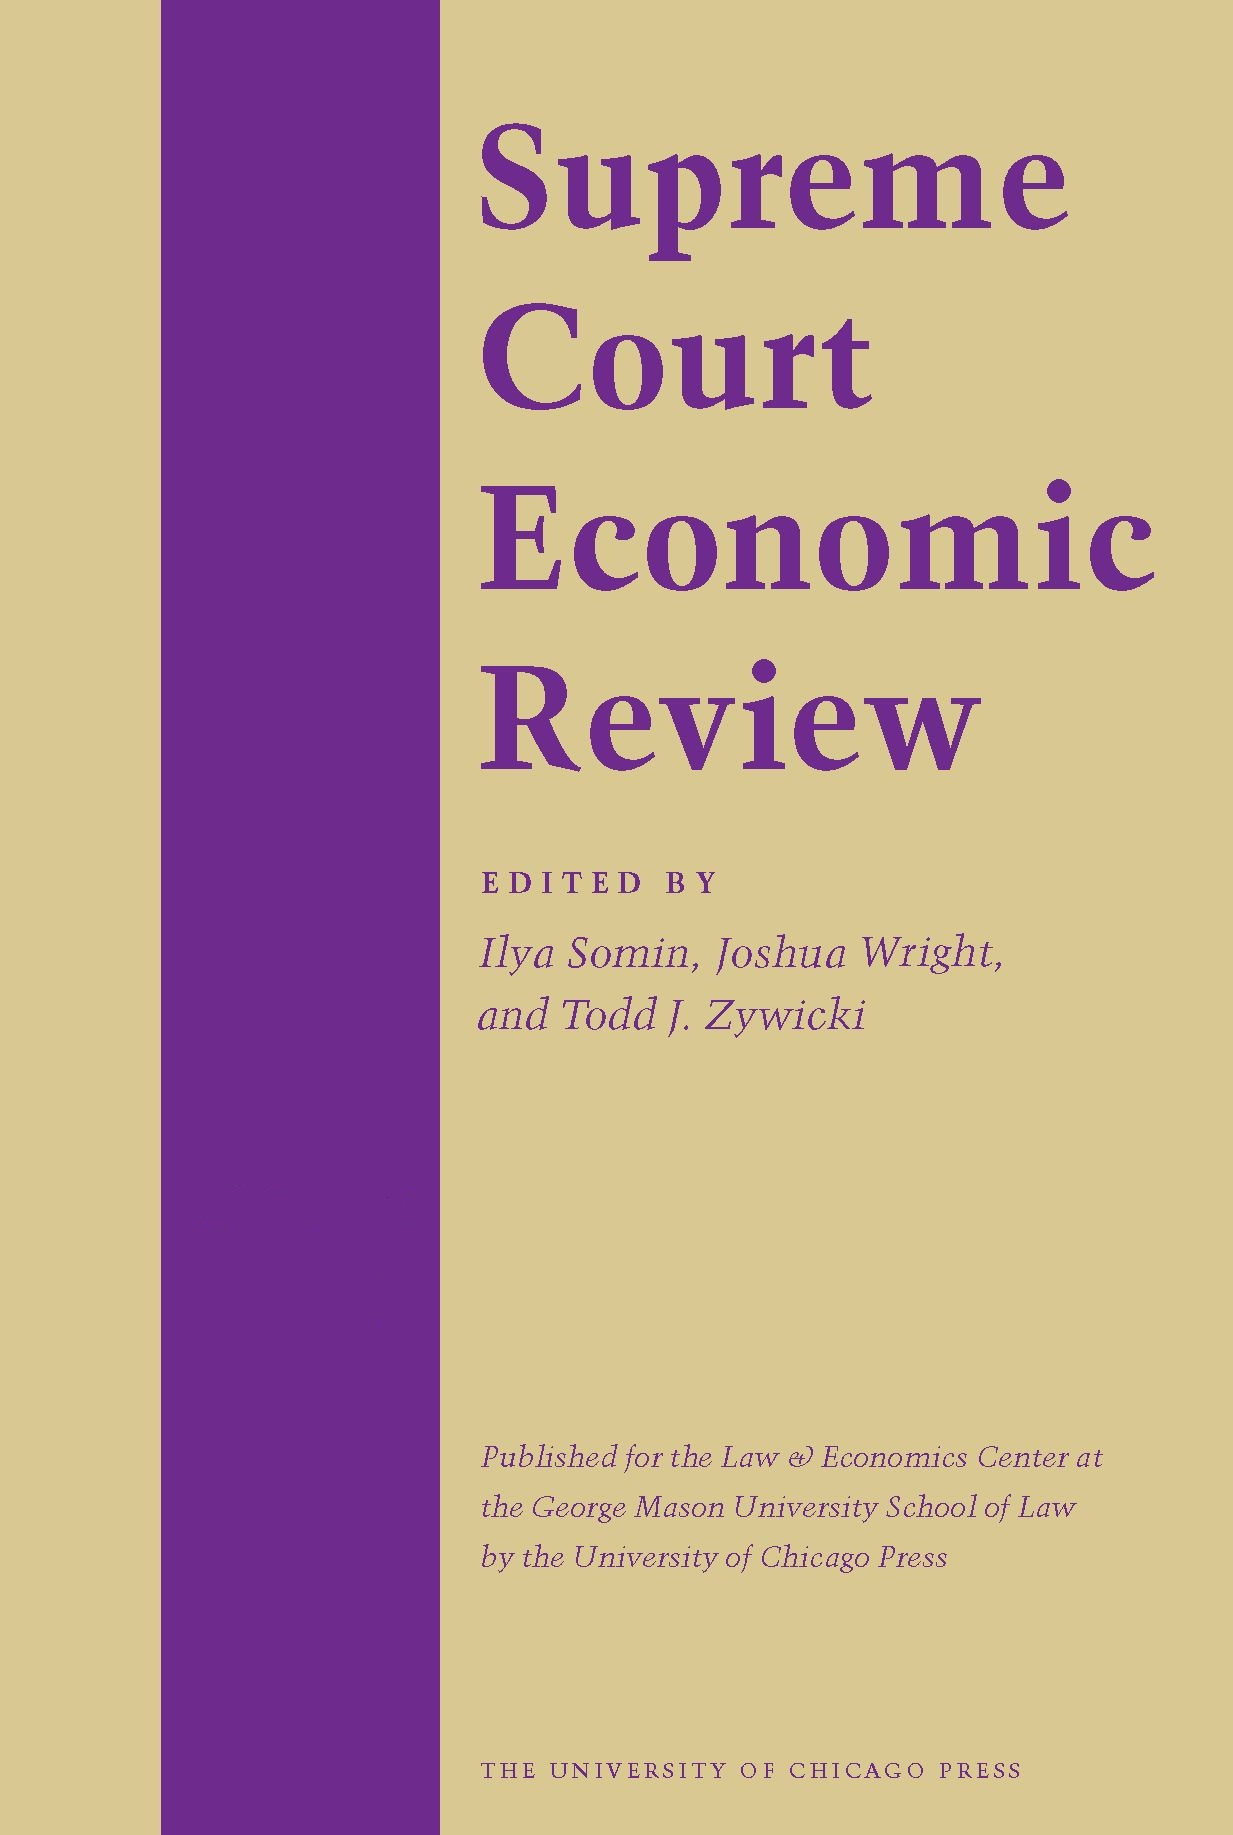 Supreme Court Economic Review, Volume 26